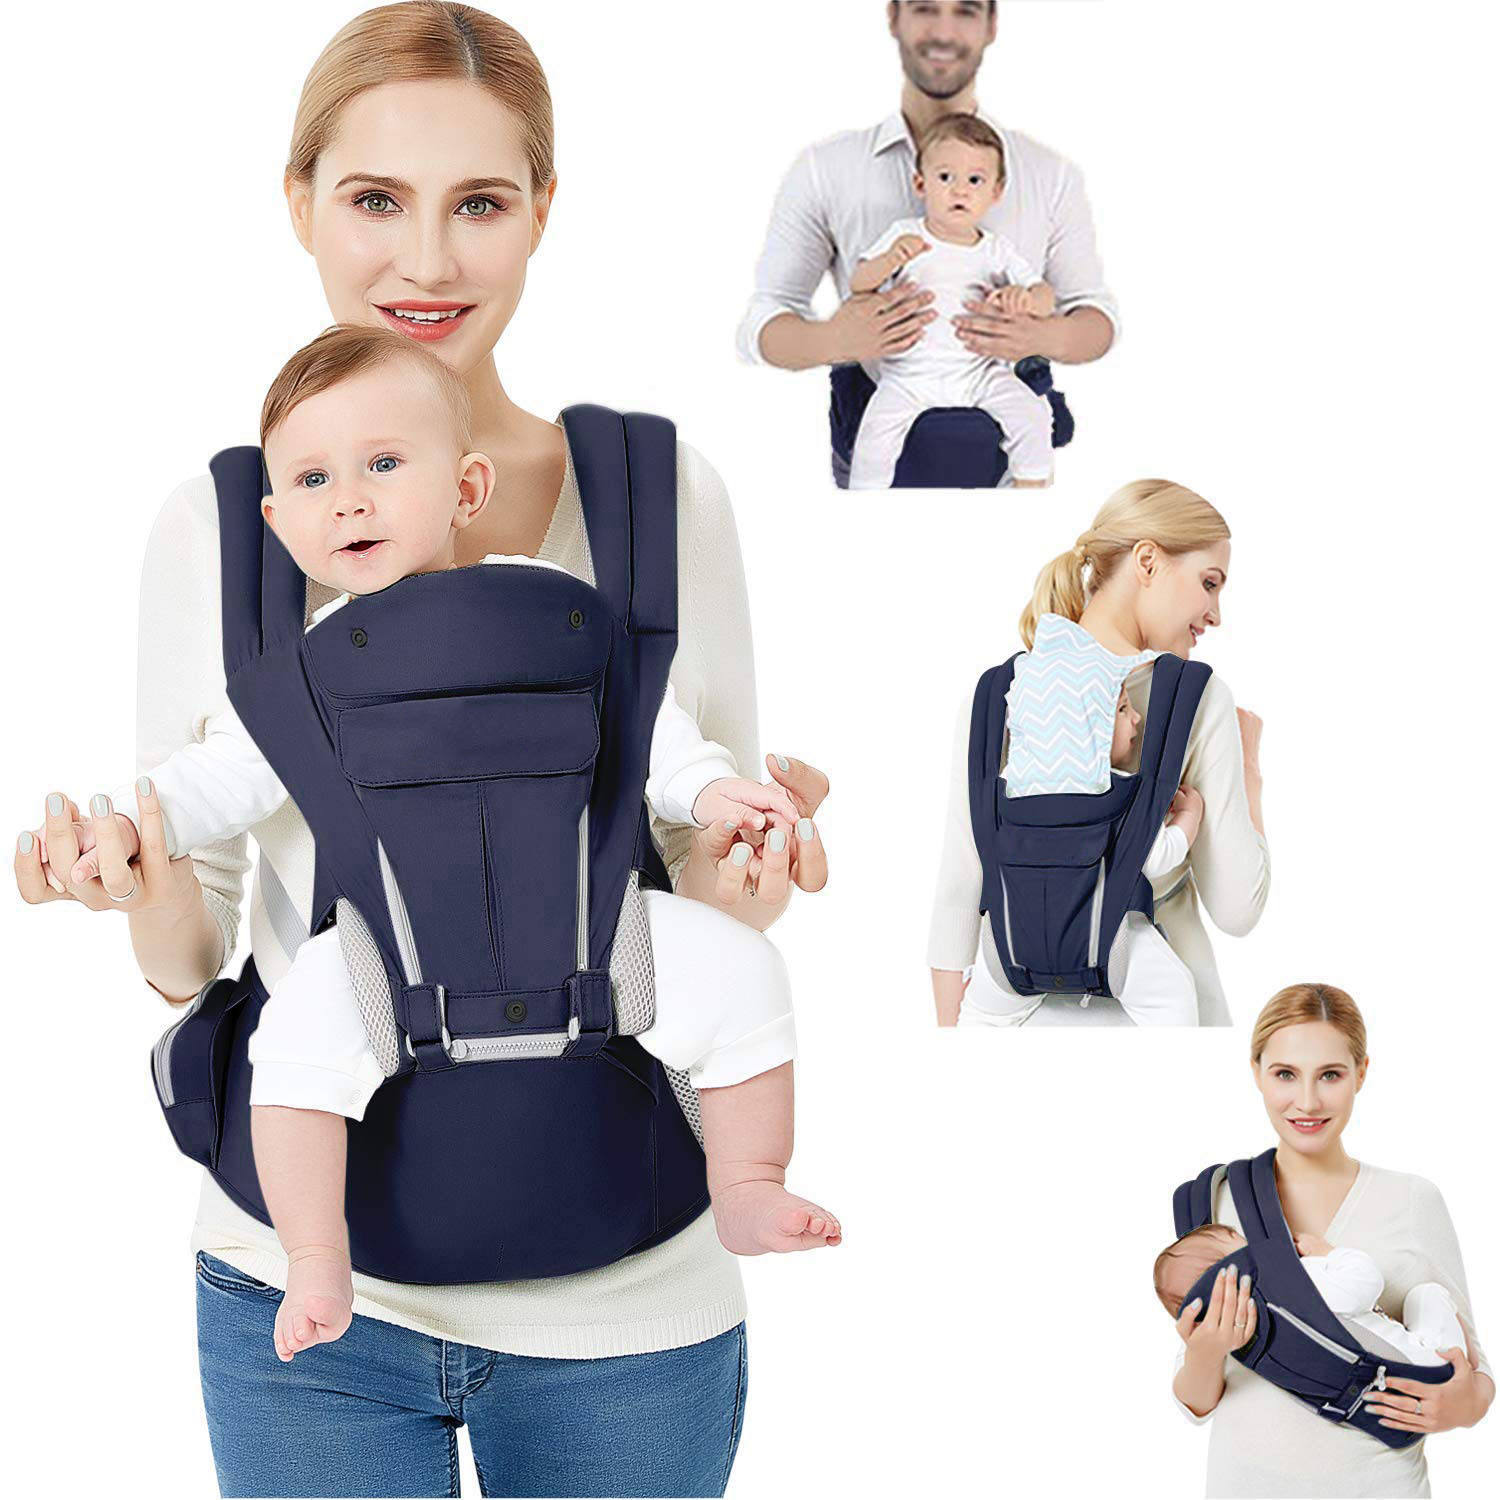 ISO9001 Supplier Ergonomic Breathable Cotton Lightweight Multiposition Hip Rest Baby Carrier